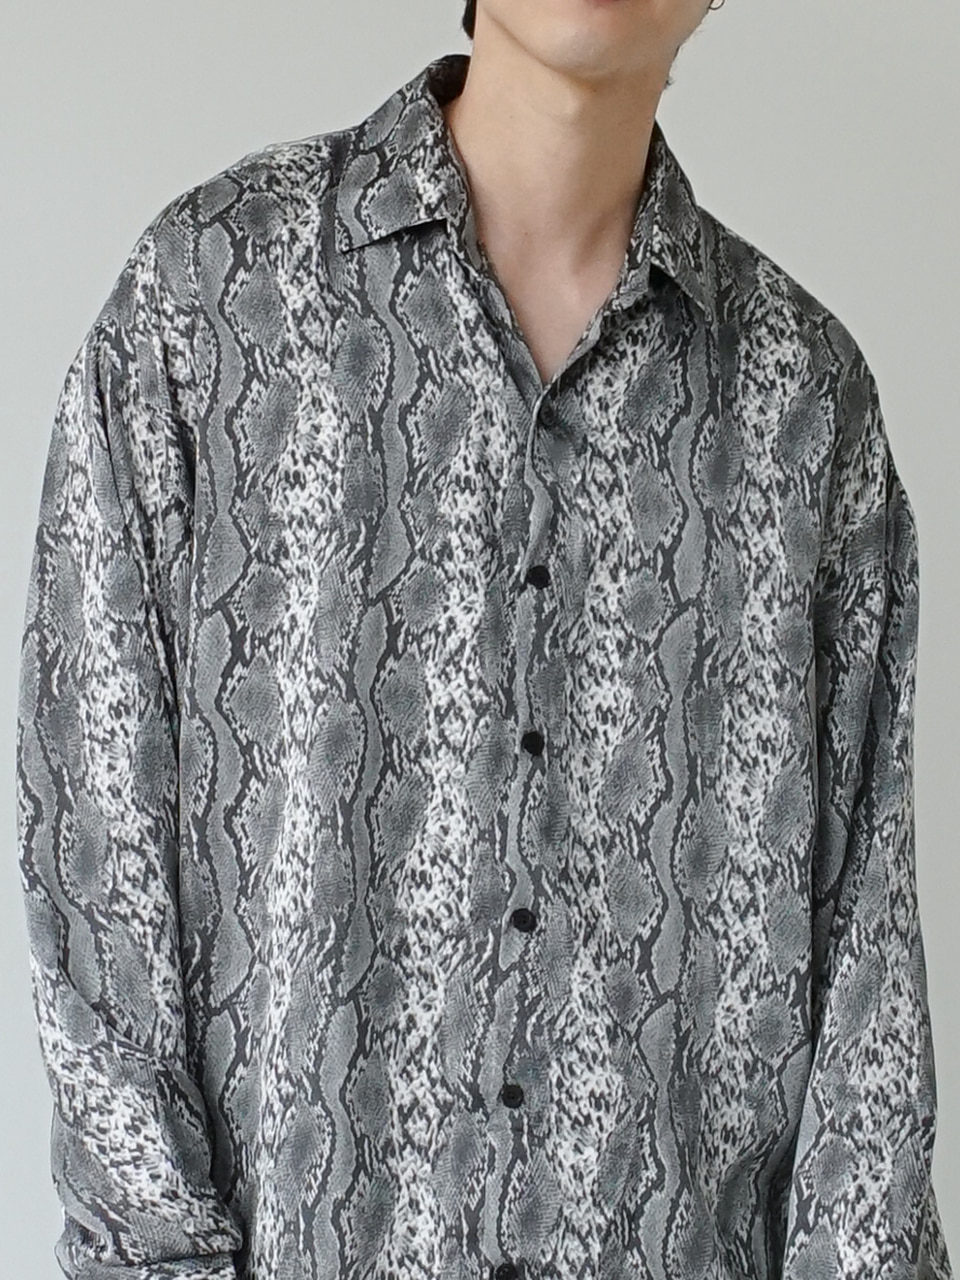 Les Silky Patterned Shirt (2color)